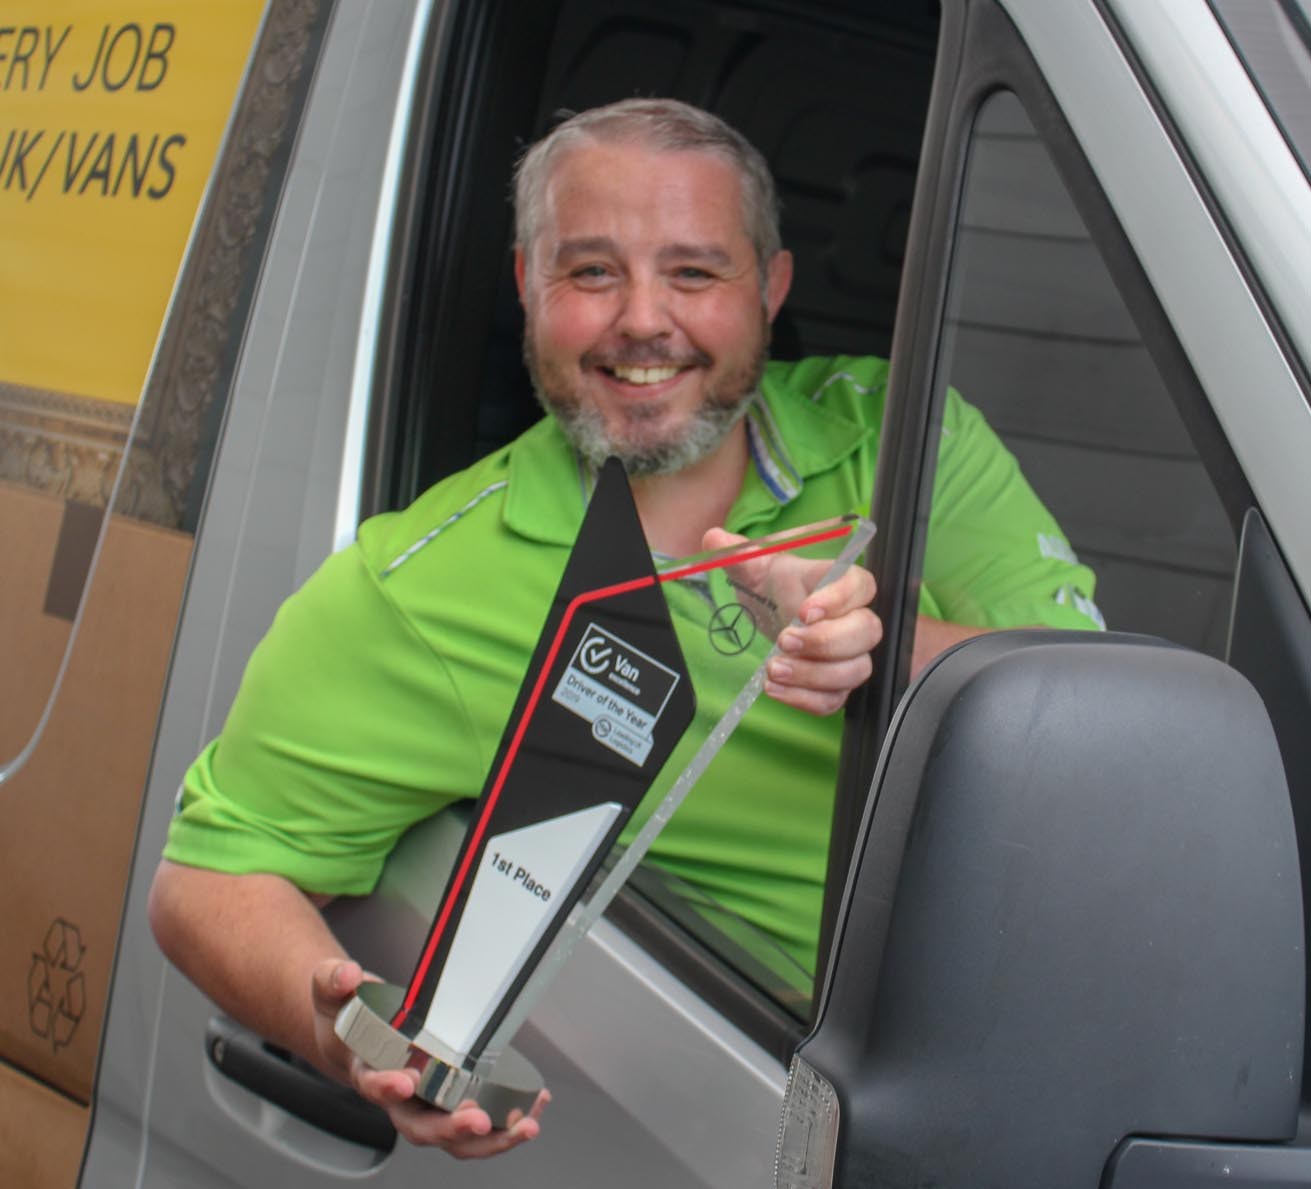 Chris Shenton, of ASDA, with his Drive of the Year trophy